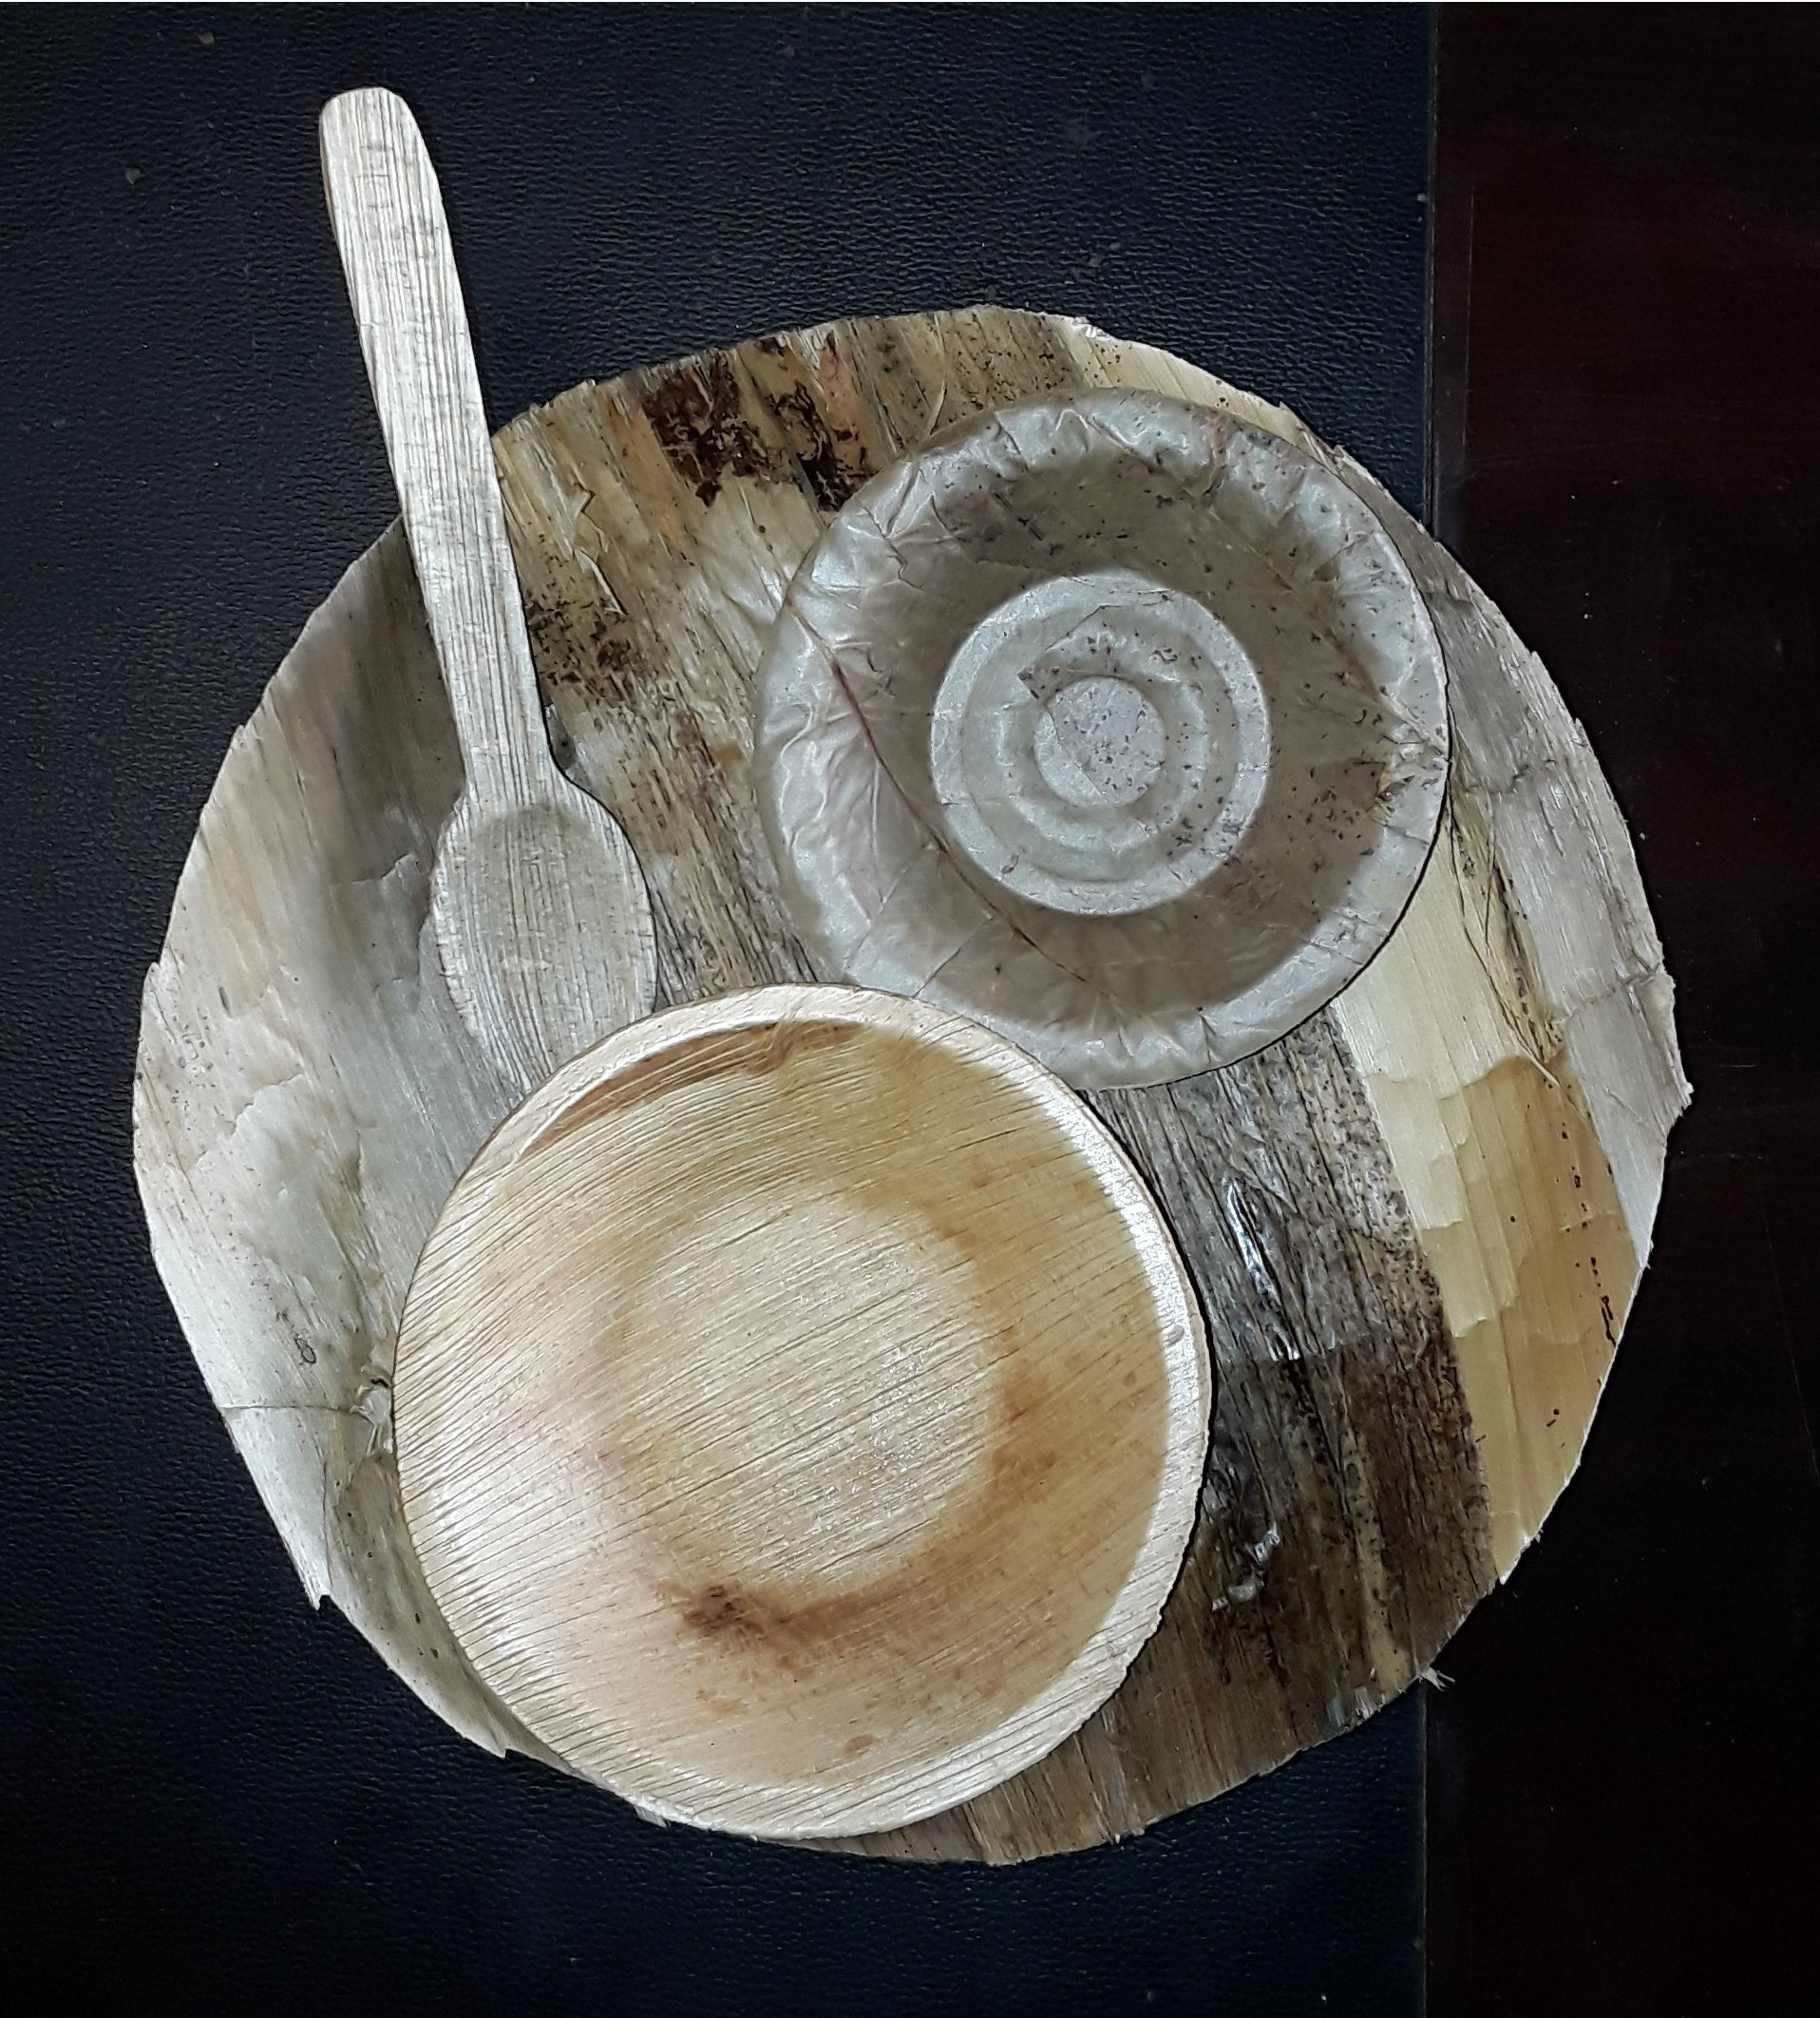 /srv/www/vhosts/user3101/html/entrepreneurship-campus.org/wp-content/uploads/2019/05/plates-and-a-spoon-from-areca-leaf-banana-fiber-and-tree-leaves-1.jpg